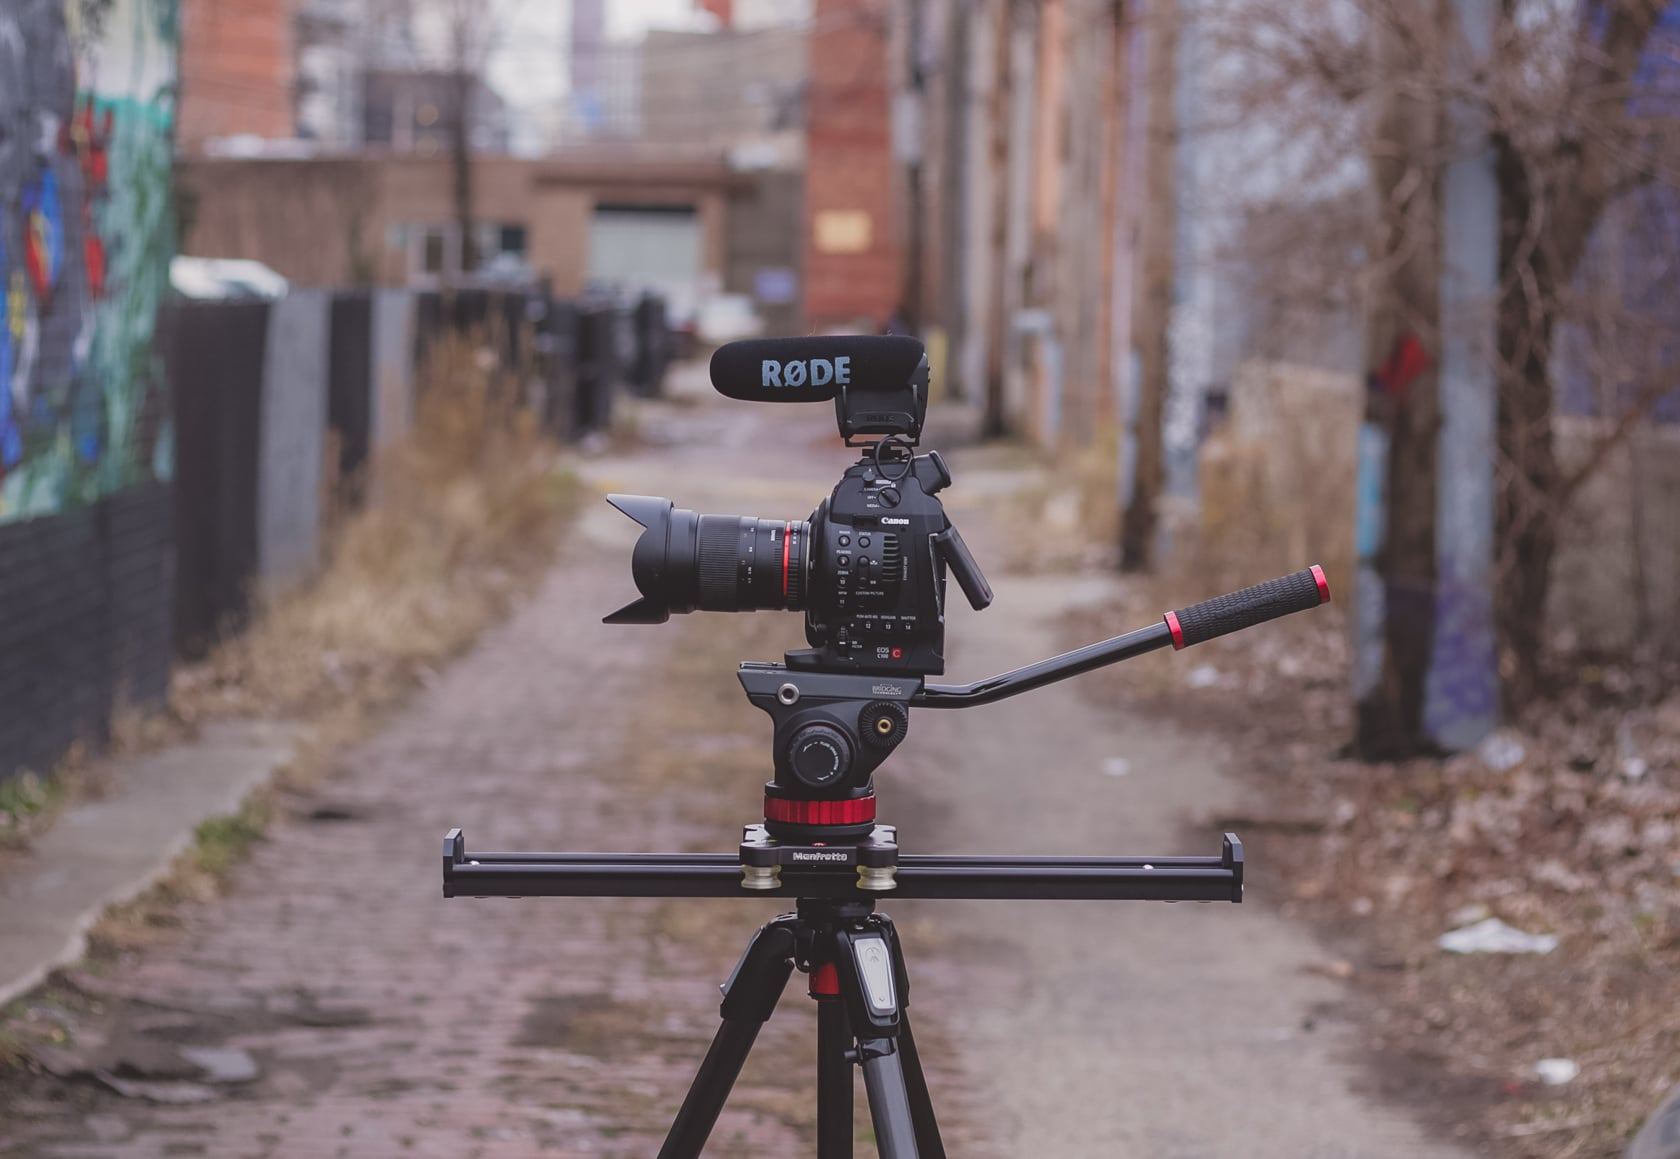 (Chicago, IL) {Pictured: Rode Video Mic Pro, Canon C100, Manfrotto 502 fluid head, Manfrotto 60cm slider, Manfrotto 055 CF tripod}